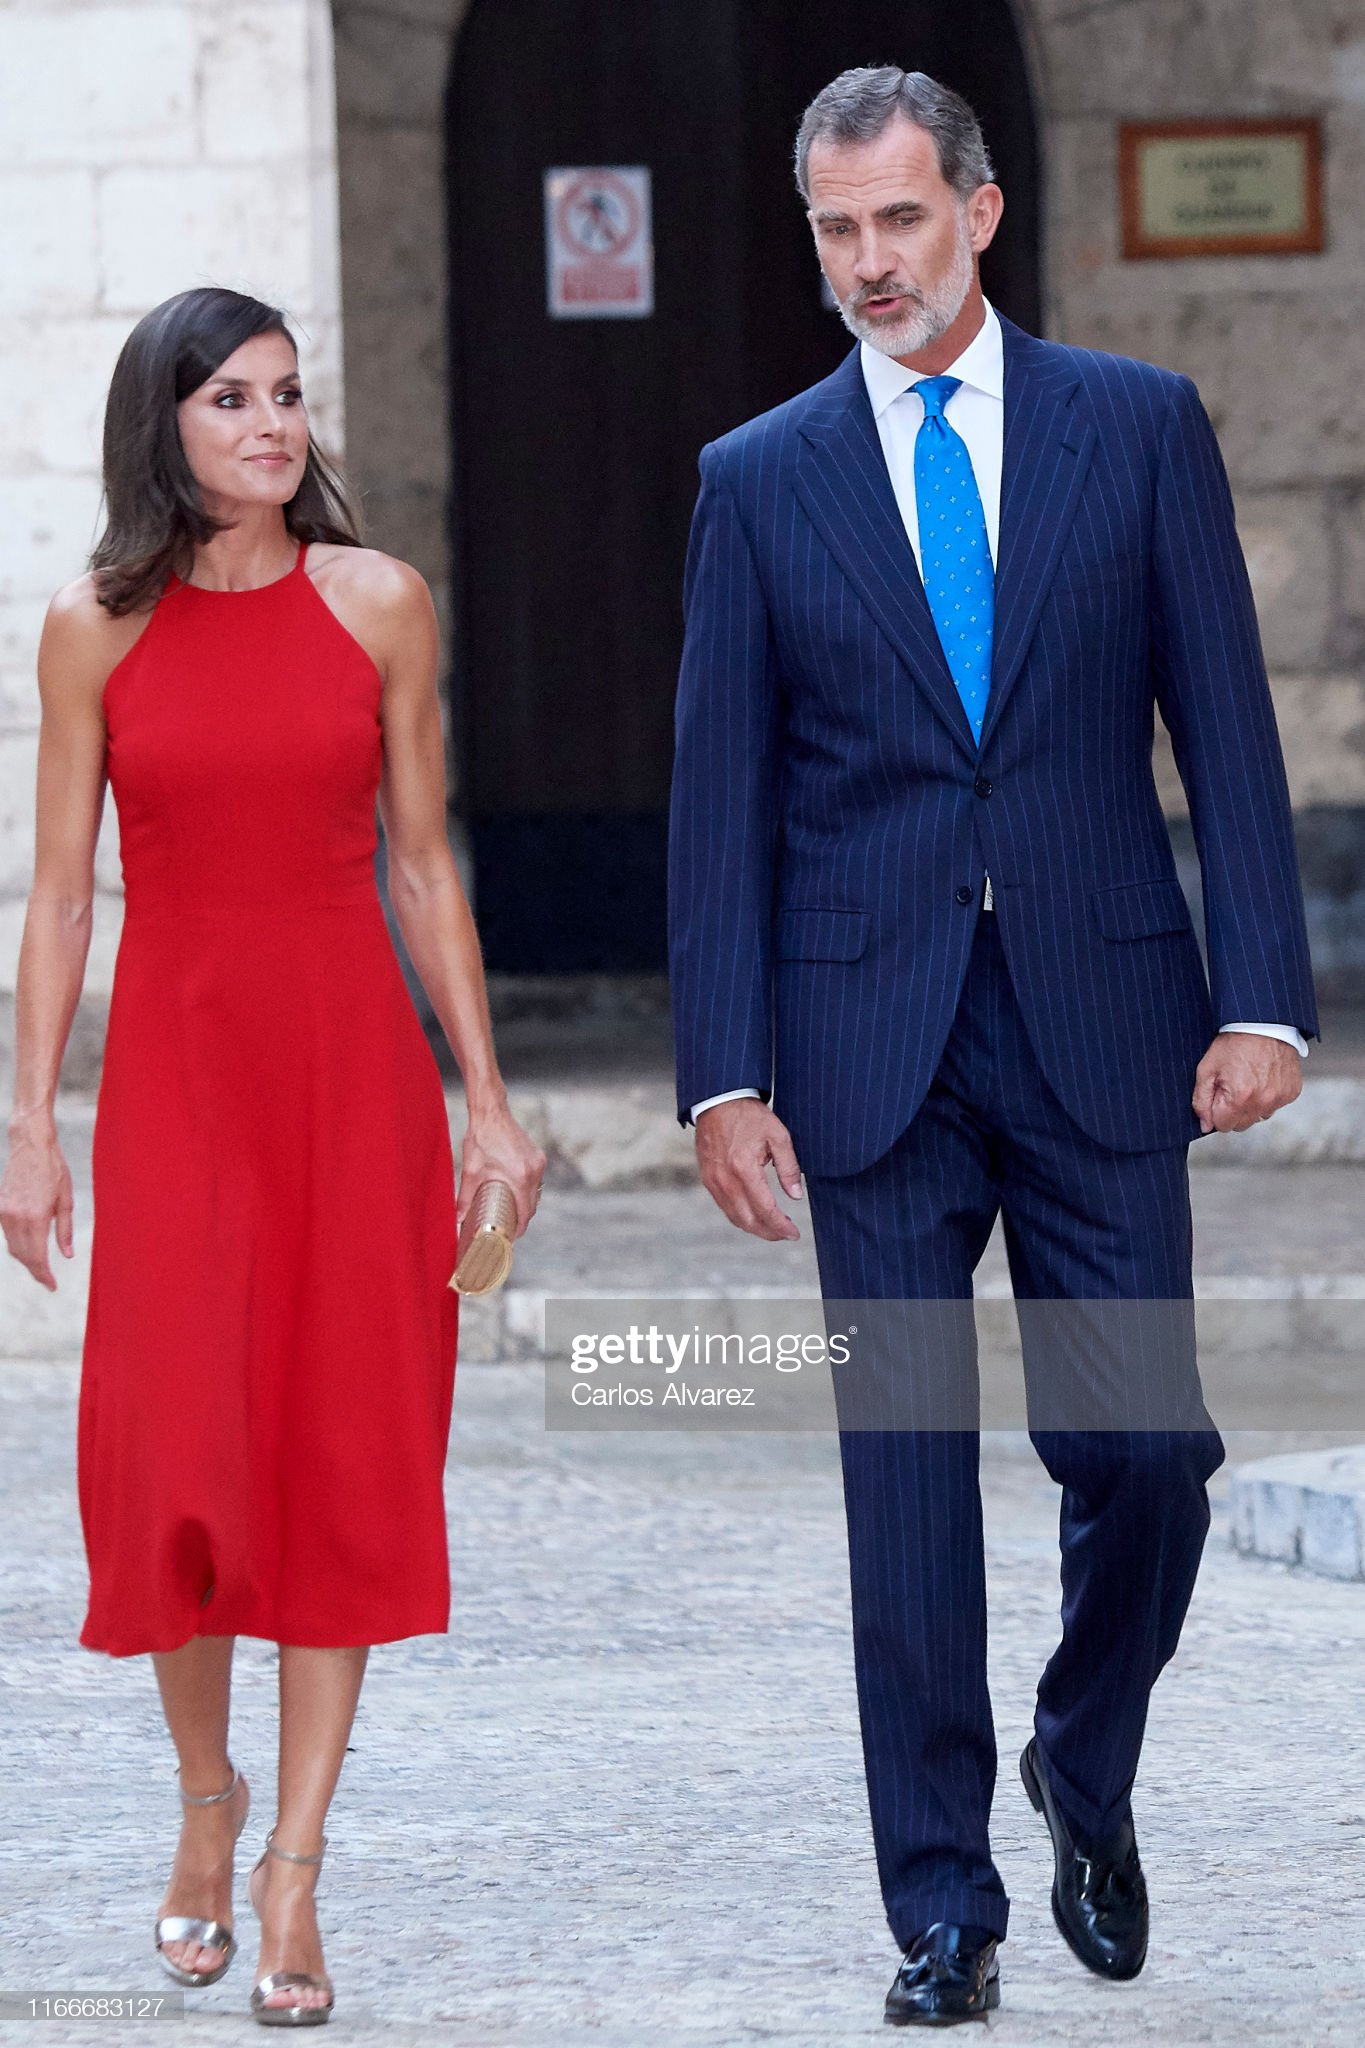 https://media.gettyimages.com/photos/king-felipe-vi-of-spain-and-queen-letizia-of-spain-host-a-dinner-for-picture-id1166683127?s=2048x2048